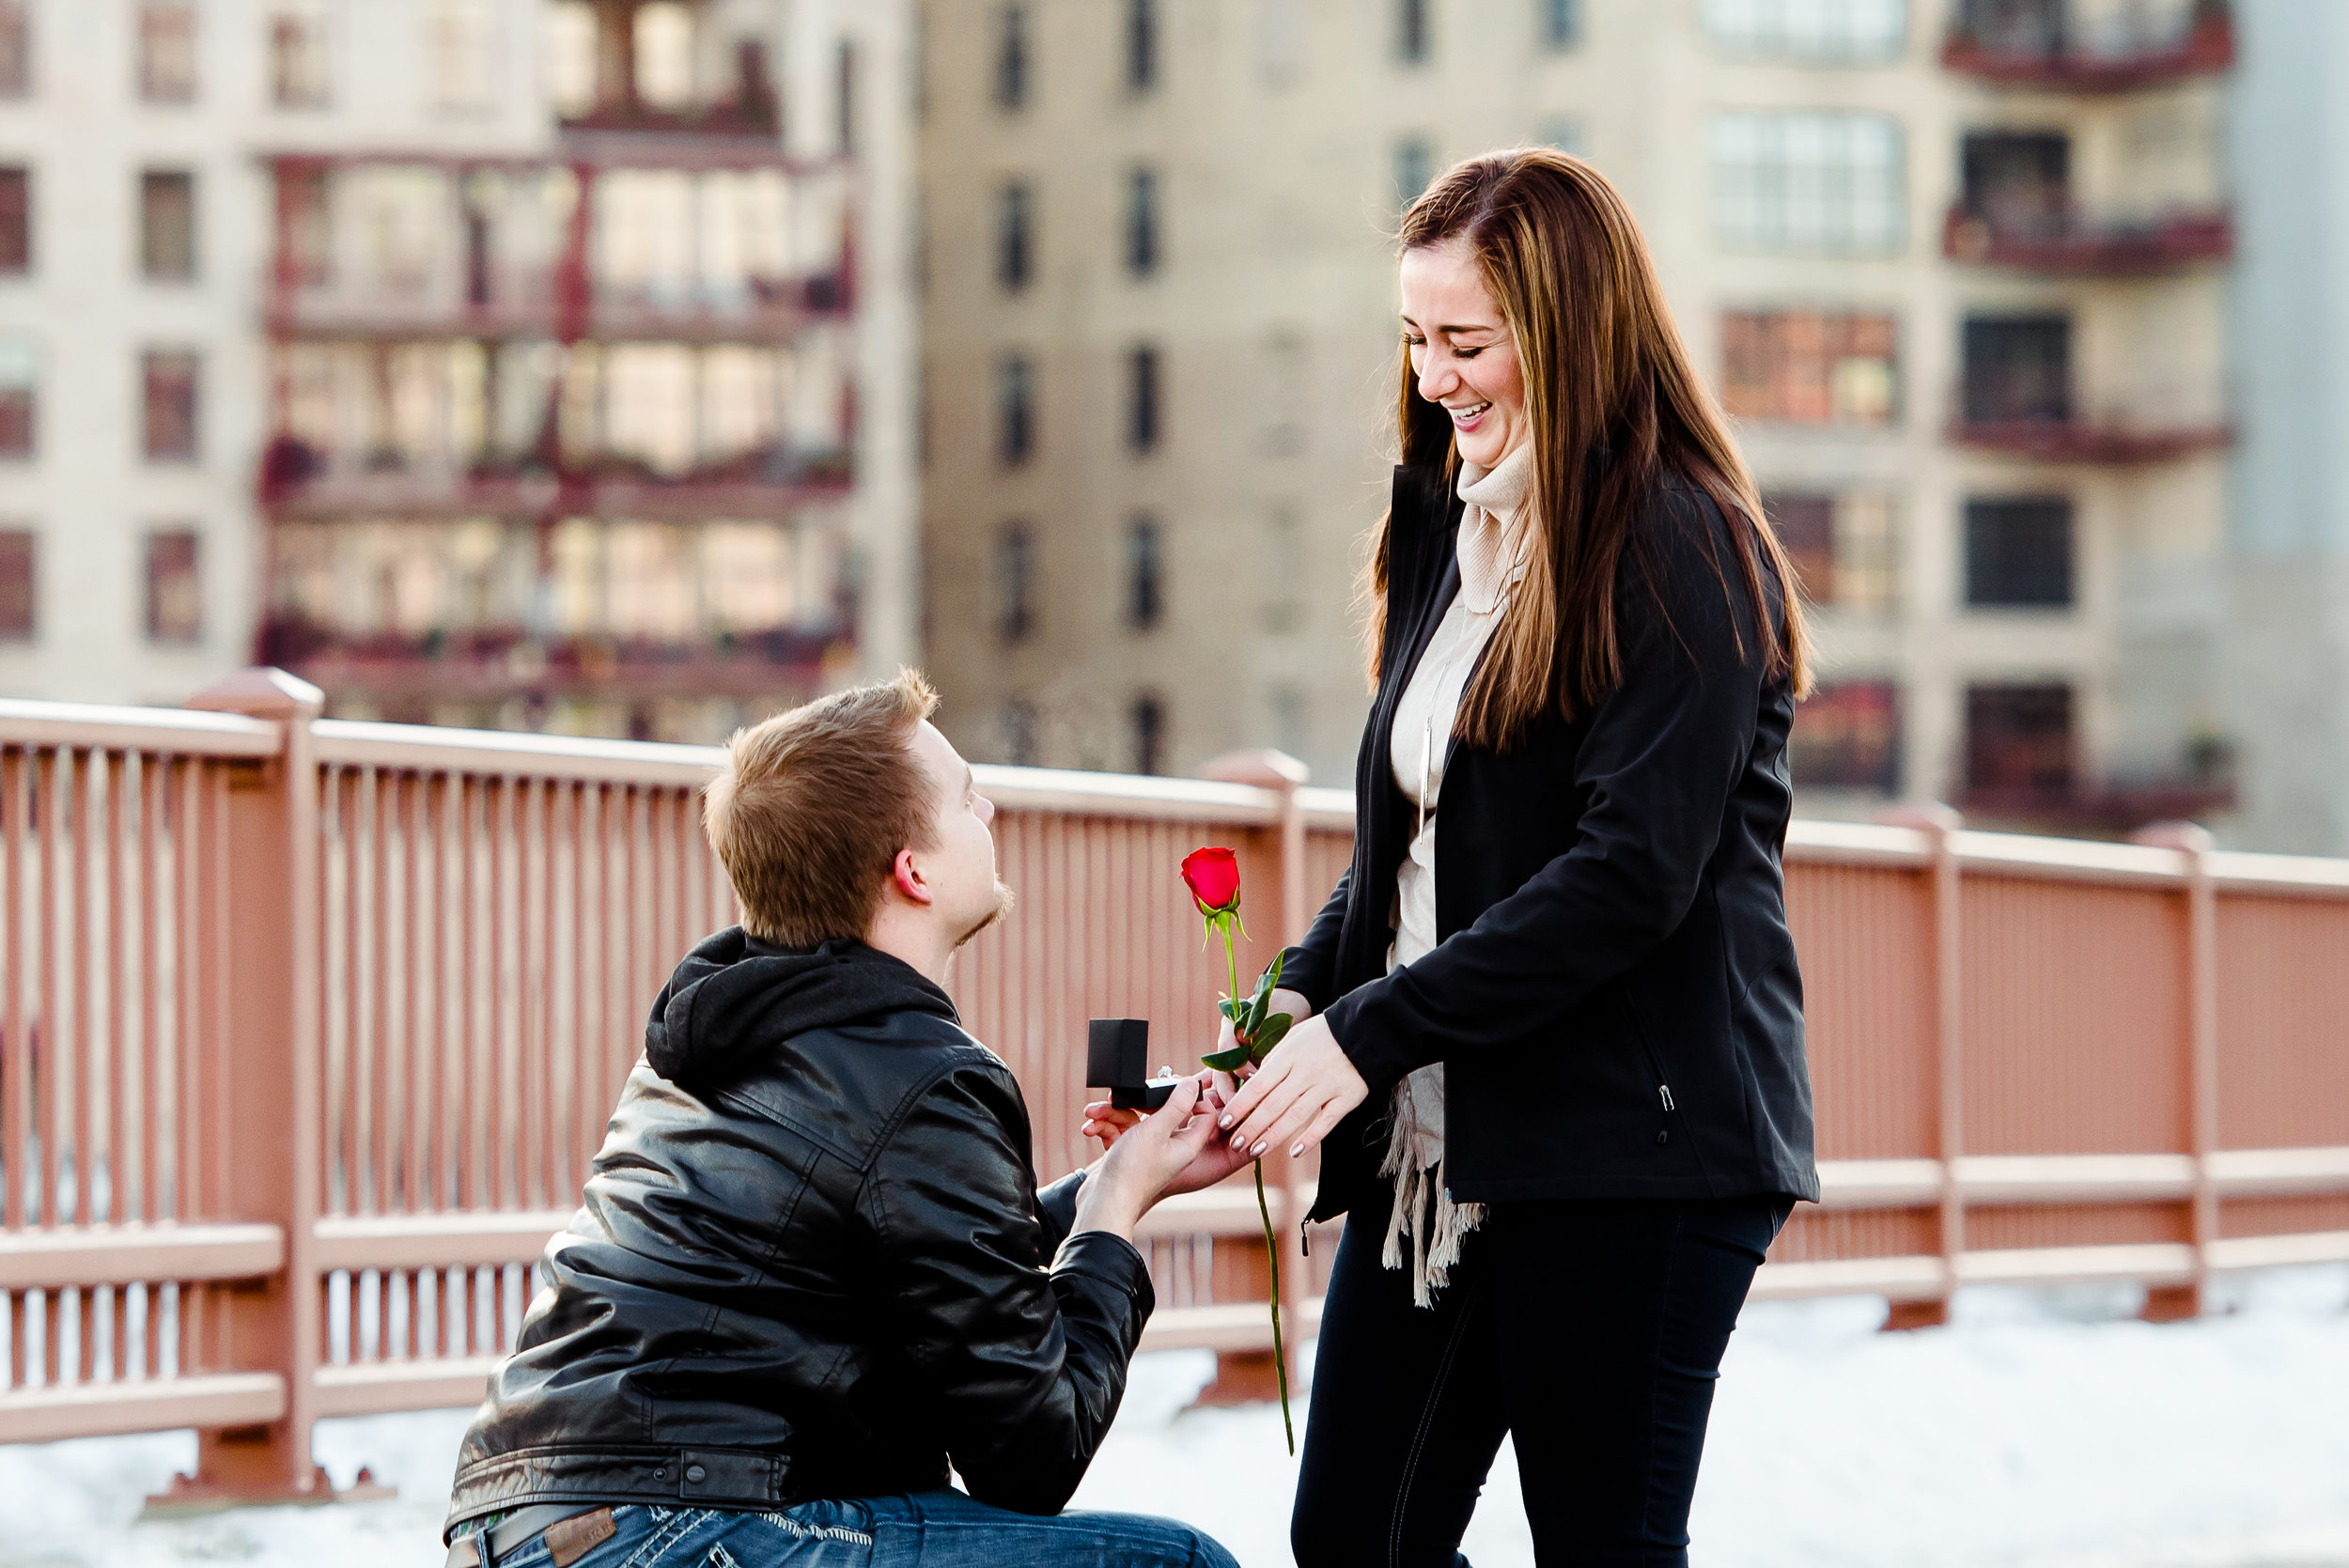 Stone Arch Bridge Engagement Proposal - Will you marry me - Minneapolis Twin Cities Proposal Photography